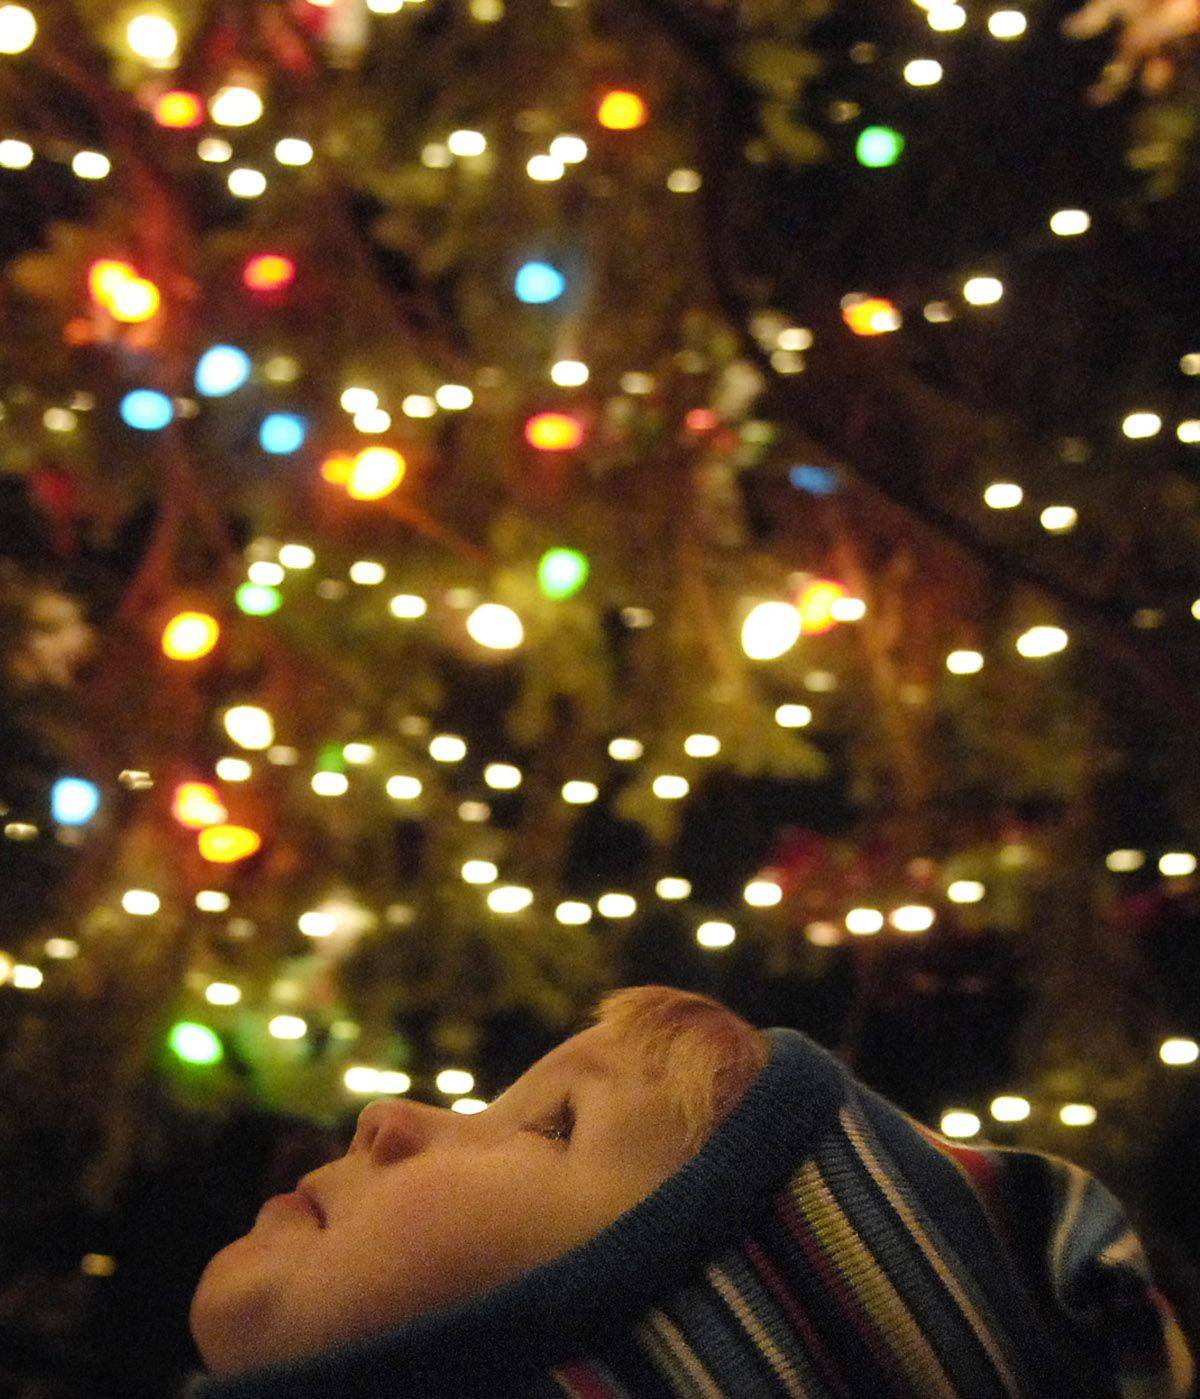 Two-year-old Cameron Ziegler of Geneva leans his head back while being held up by his mom Jody to look at the lights on the Geneva Christmas tree during the annual holiday festivities.